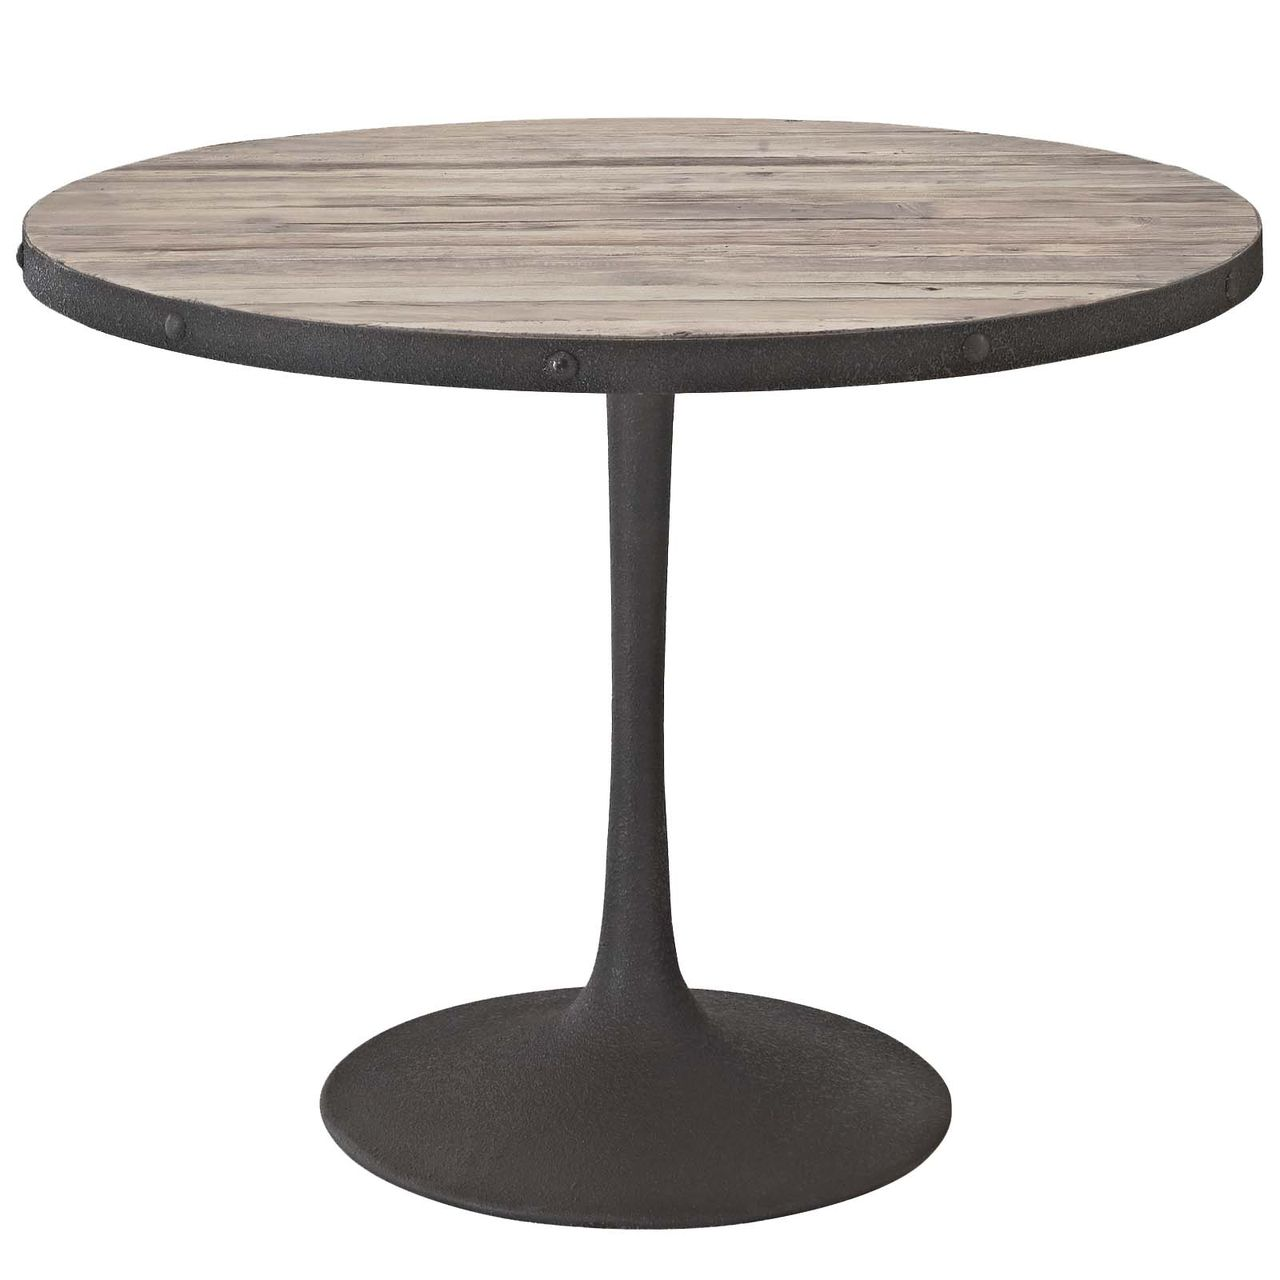 """Modway Drive 40"""" Round Wood Top Dining Table - Brown"""